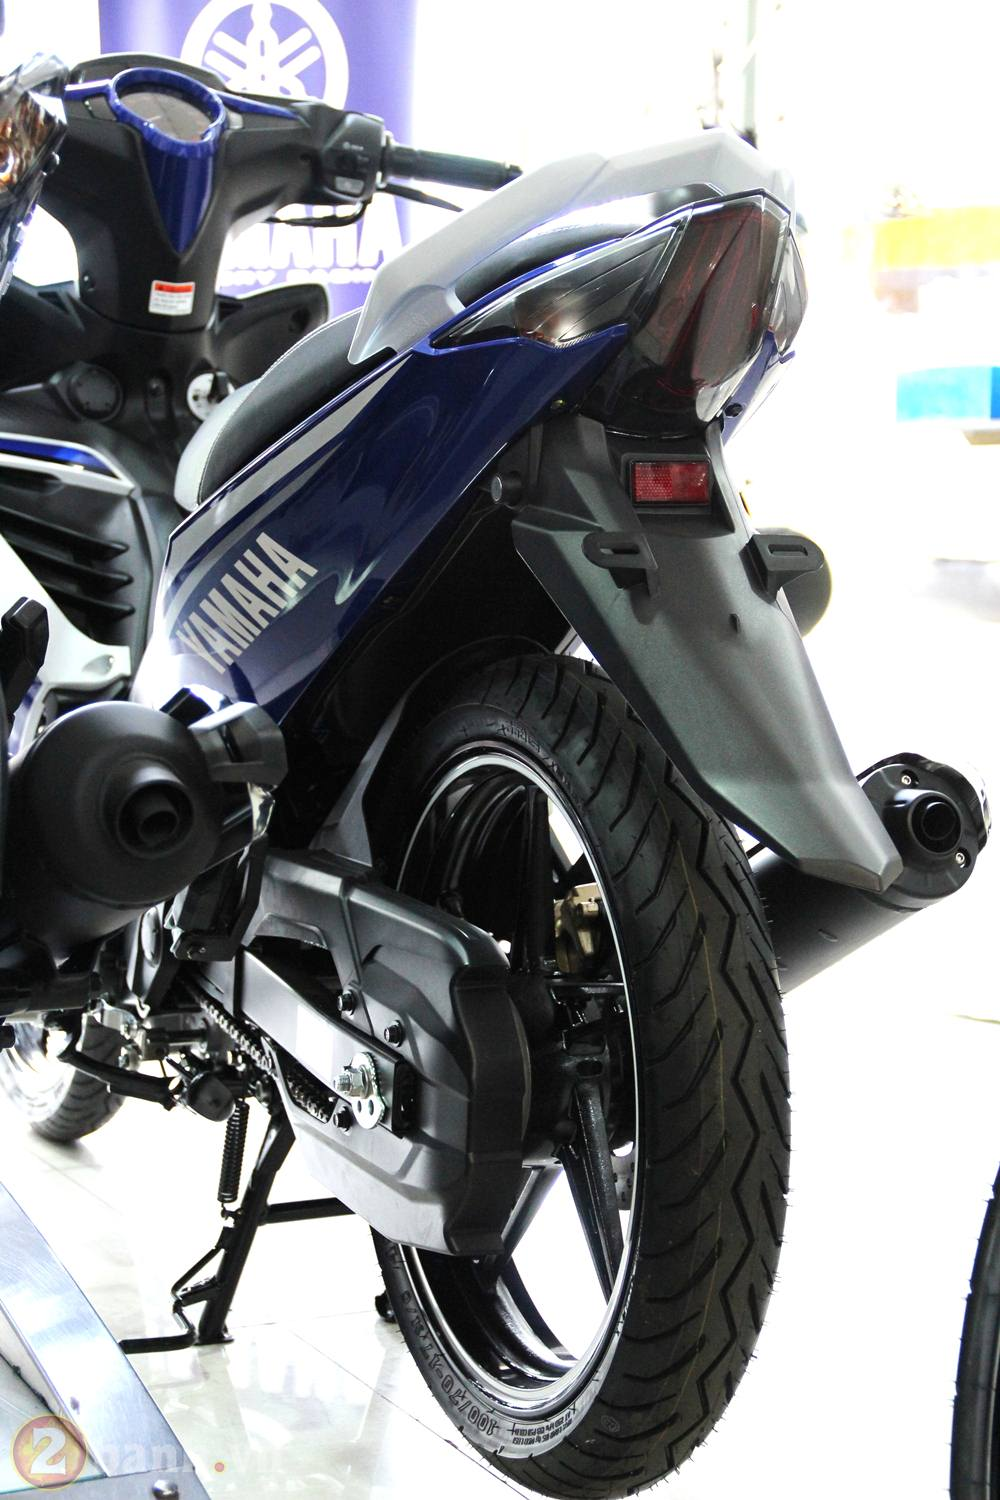 Cung 2banh vao showroom xem thu Exciter GP 2013 - 16